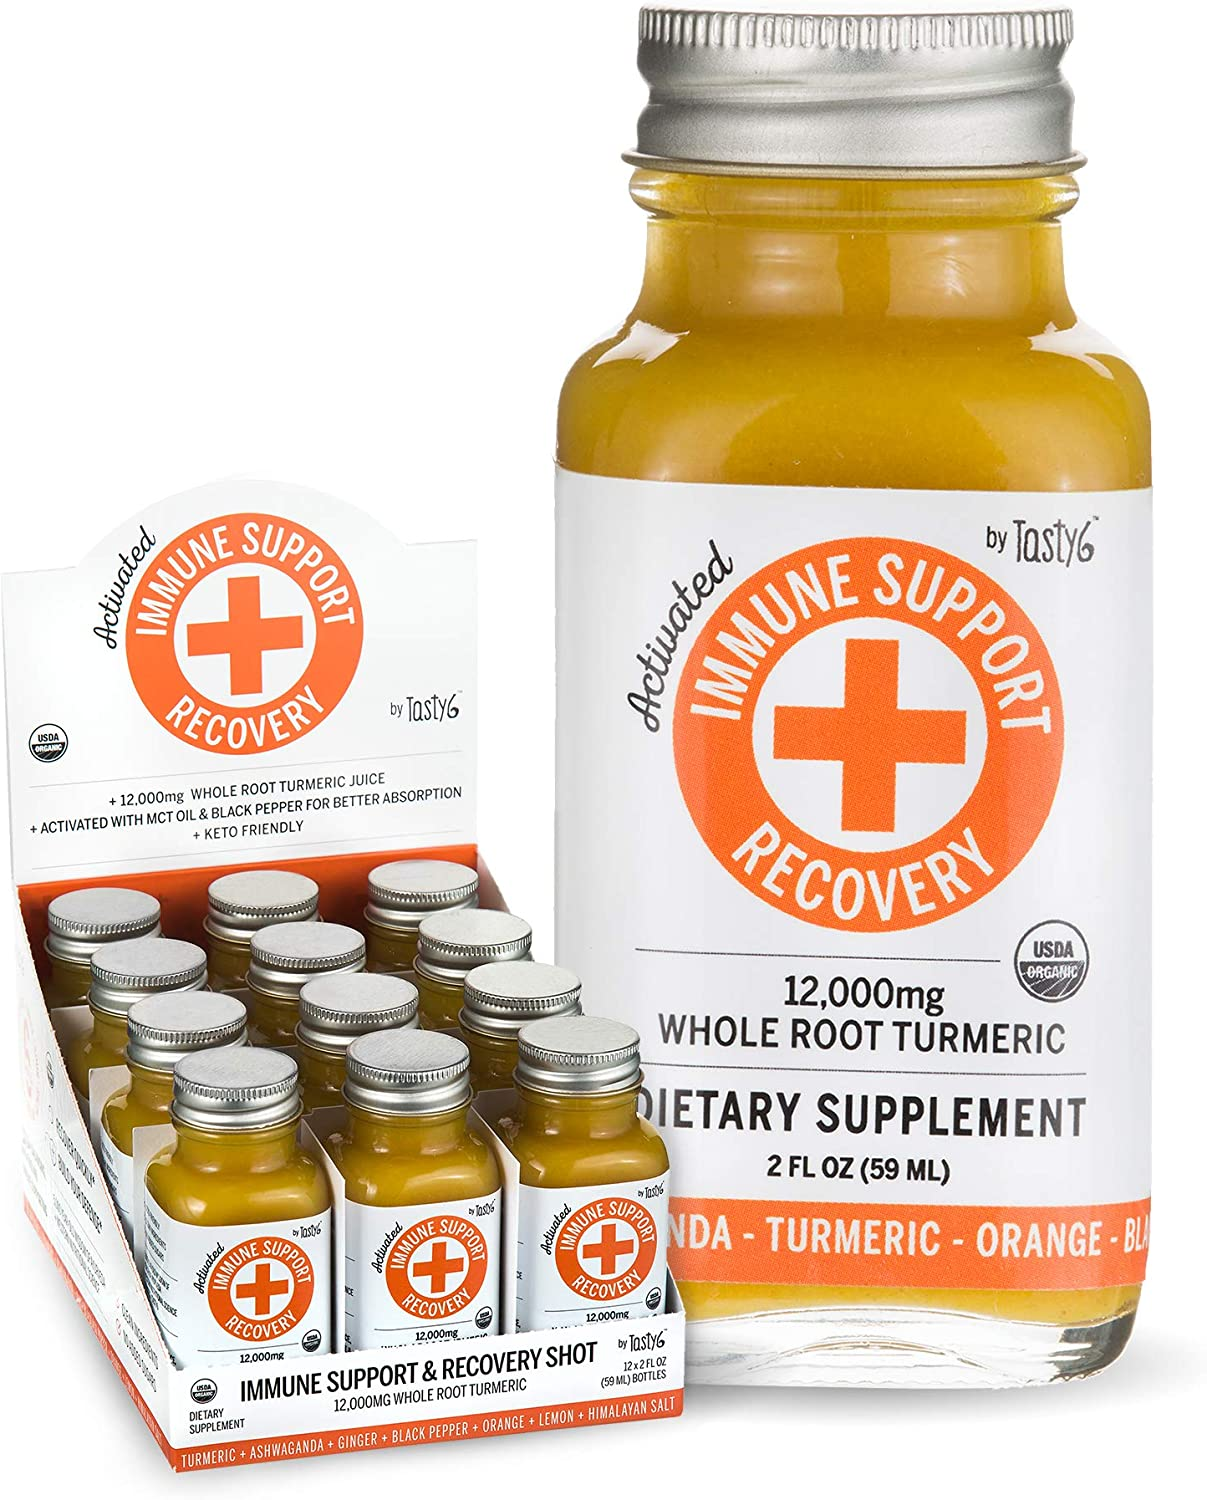 Activated Immune Support and Recovery Shots, Organic and Non-GMO Immunity Shots with Black Pepper, Ginger Root, and Turmeric Root, Ashwagandha , 59mL, Pack of 12 Bottles – Tasty6